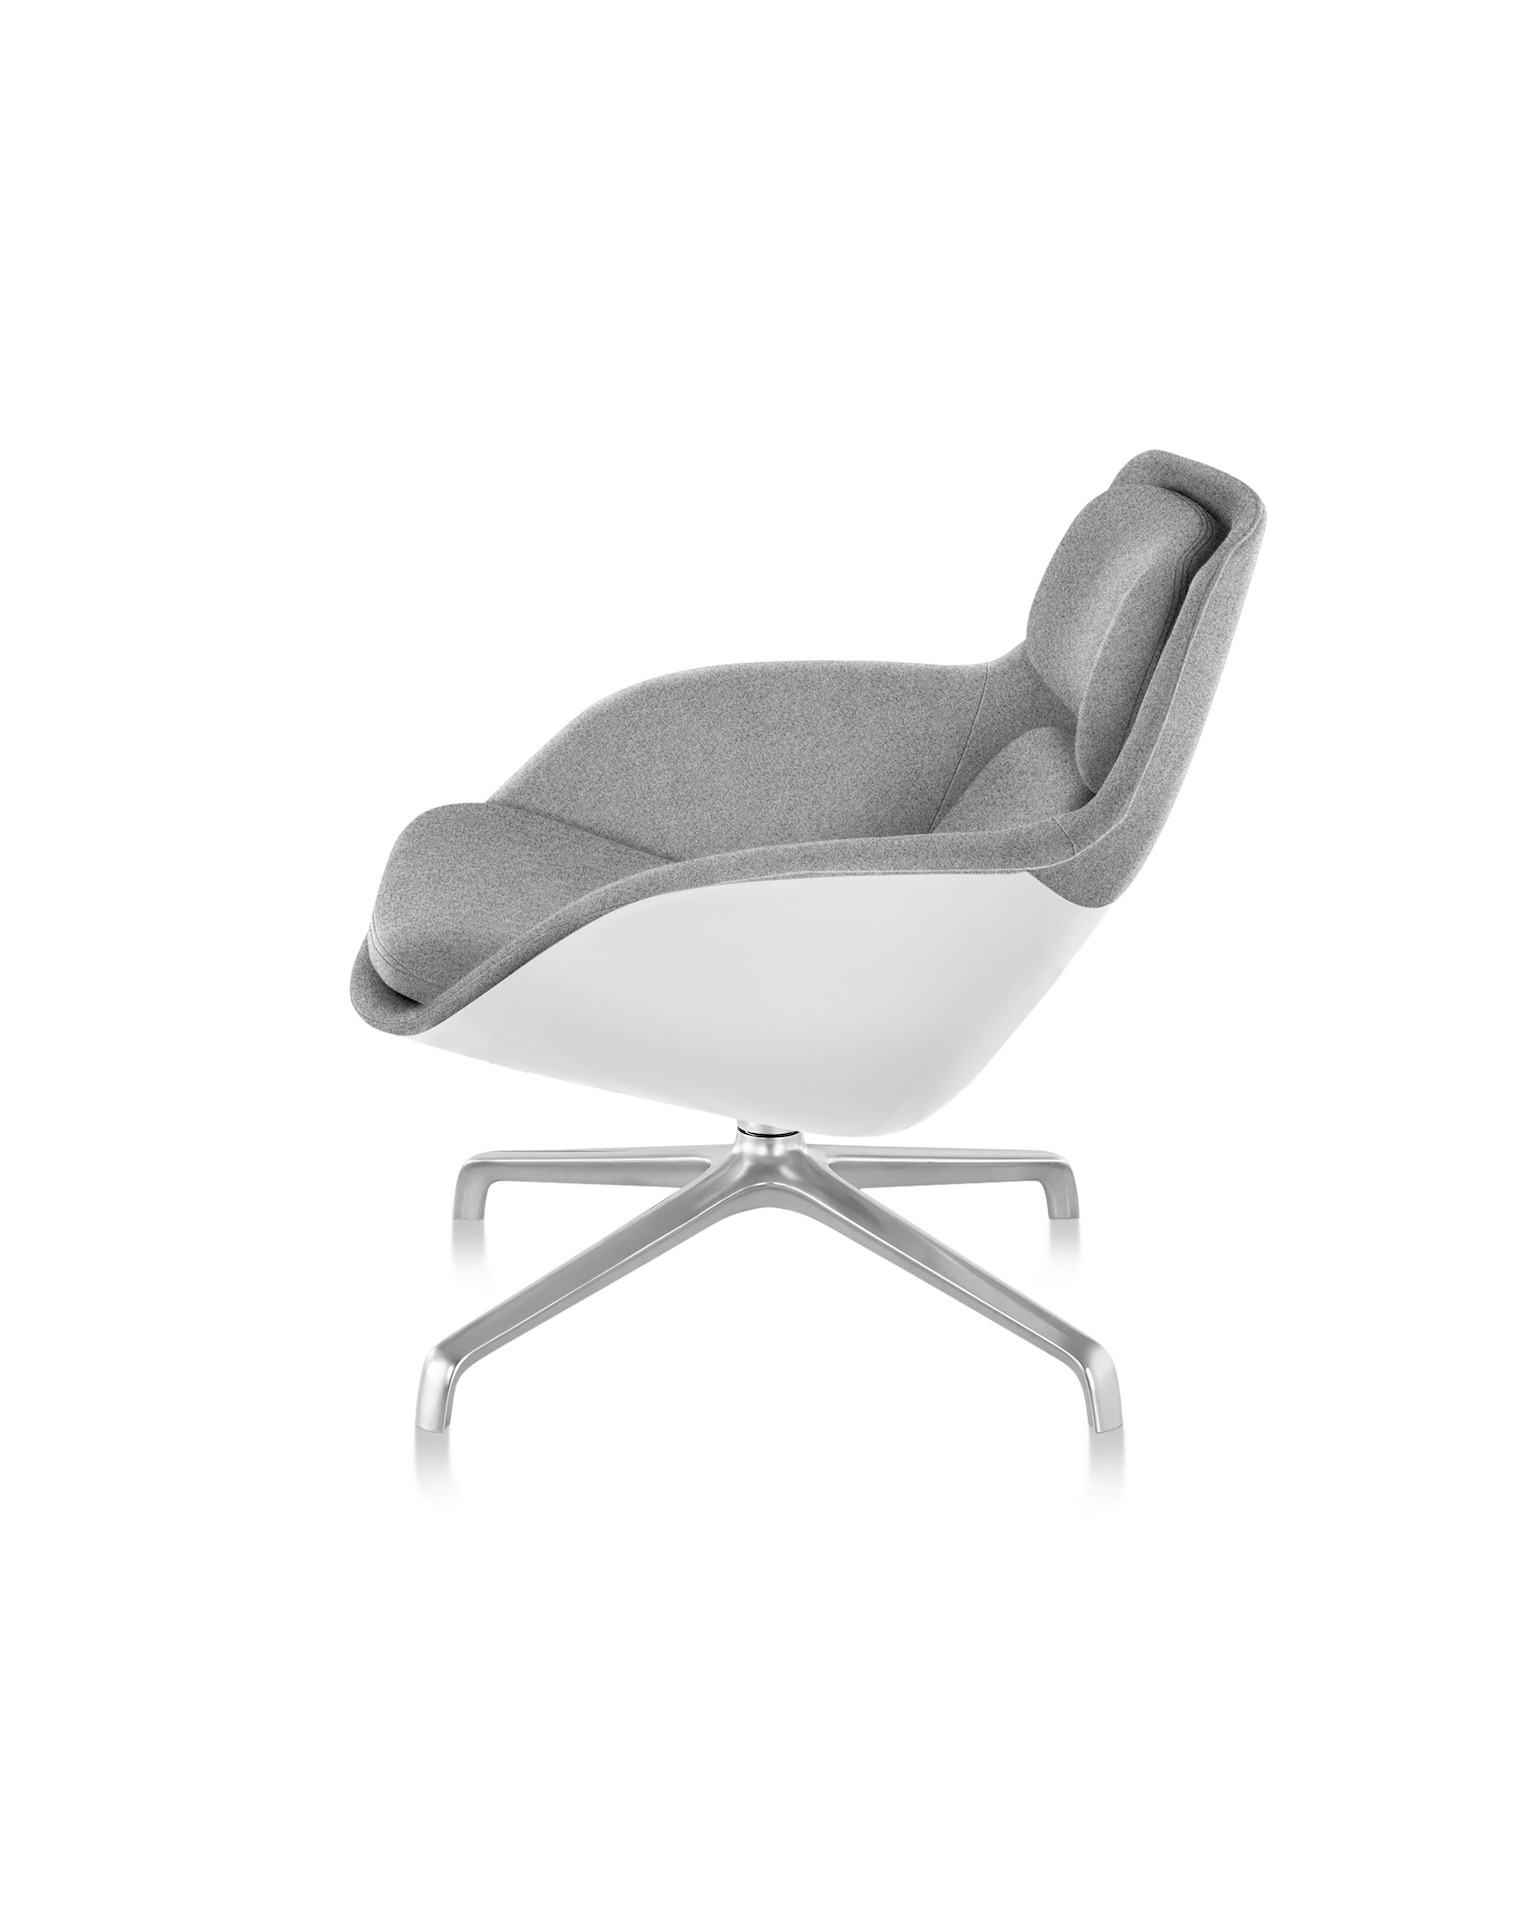 swivel chair em portugues glass pub table and chairs striad product images lounge seating herman miller low back four star base